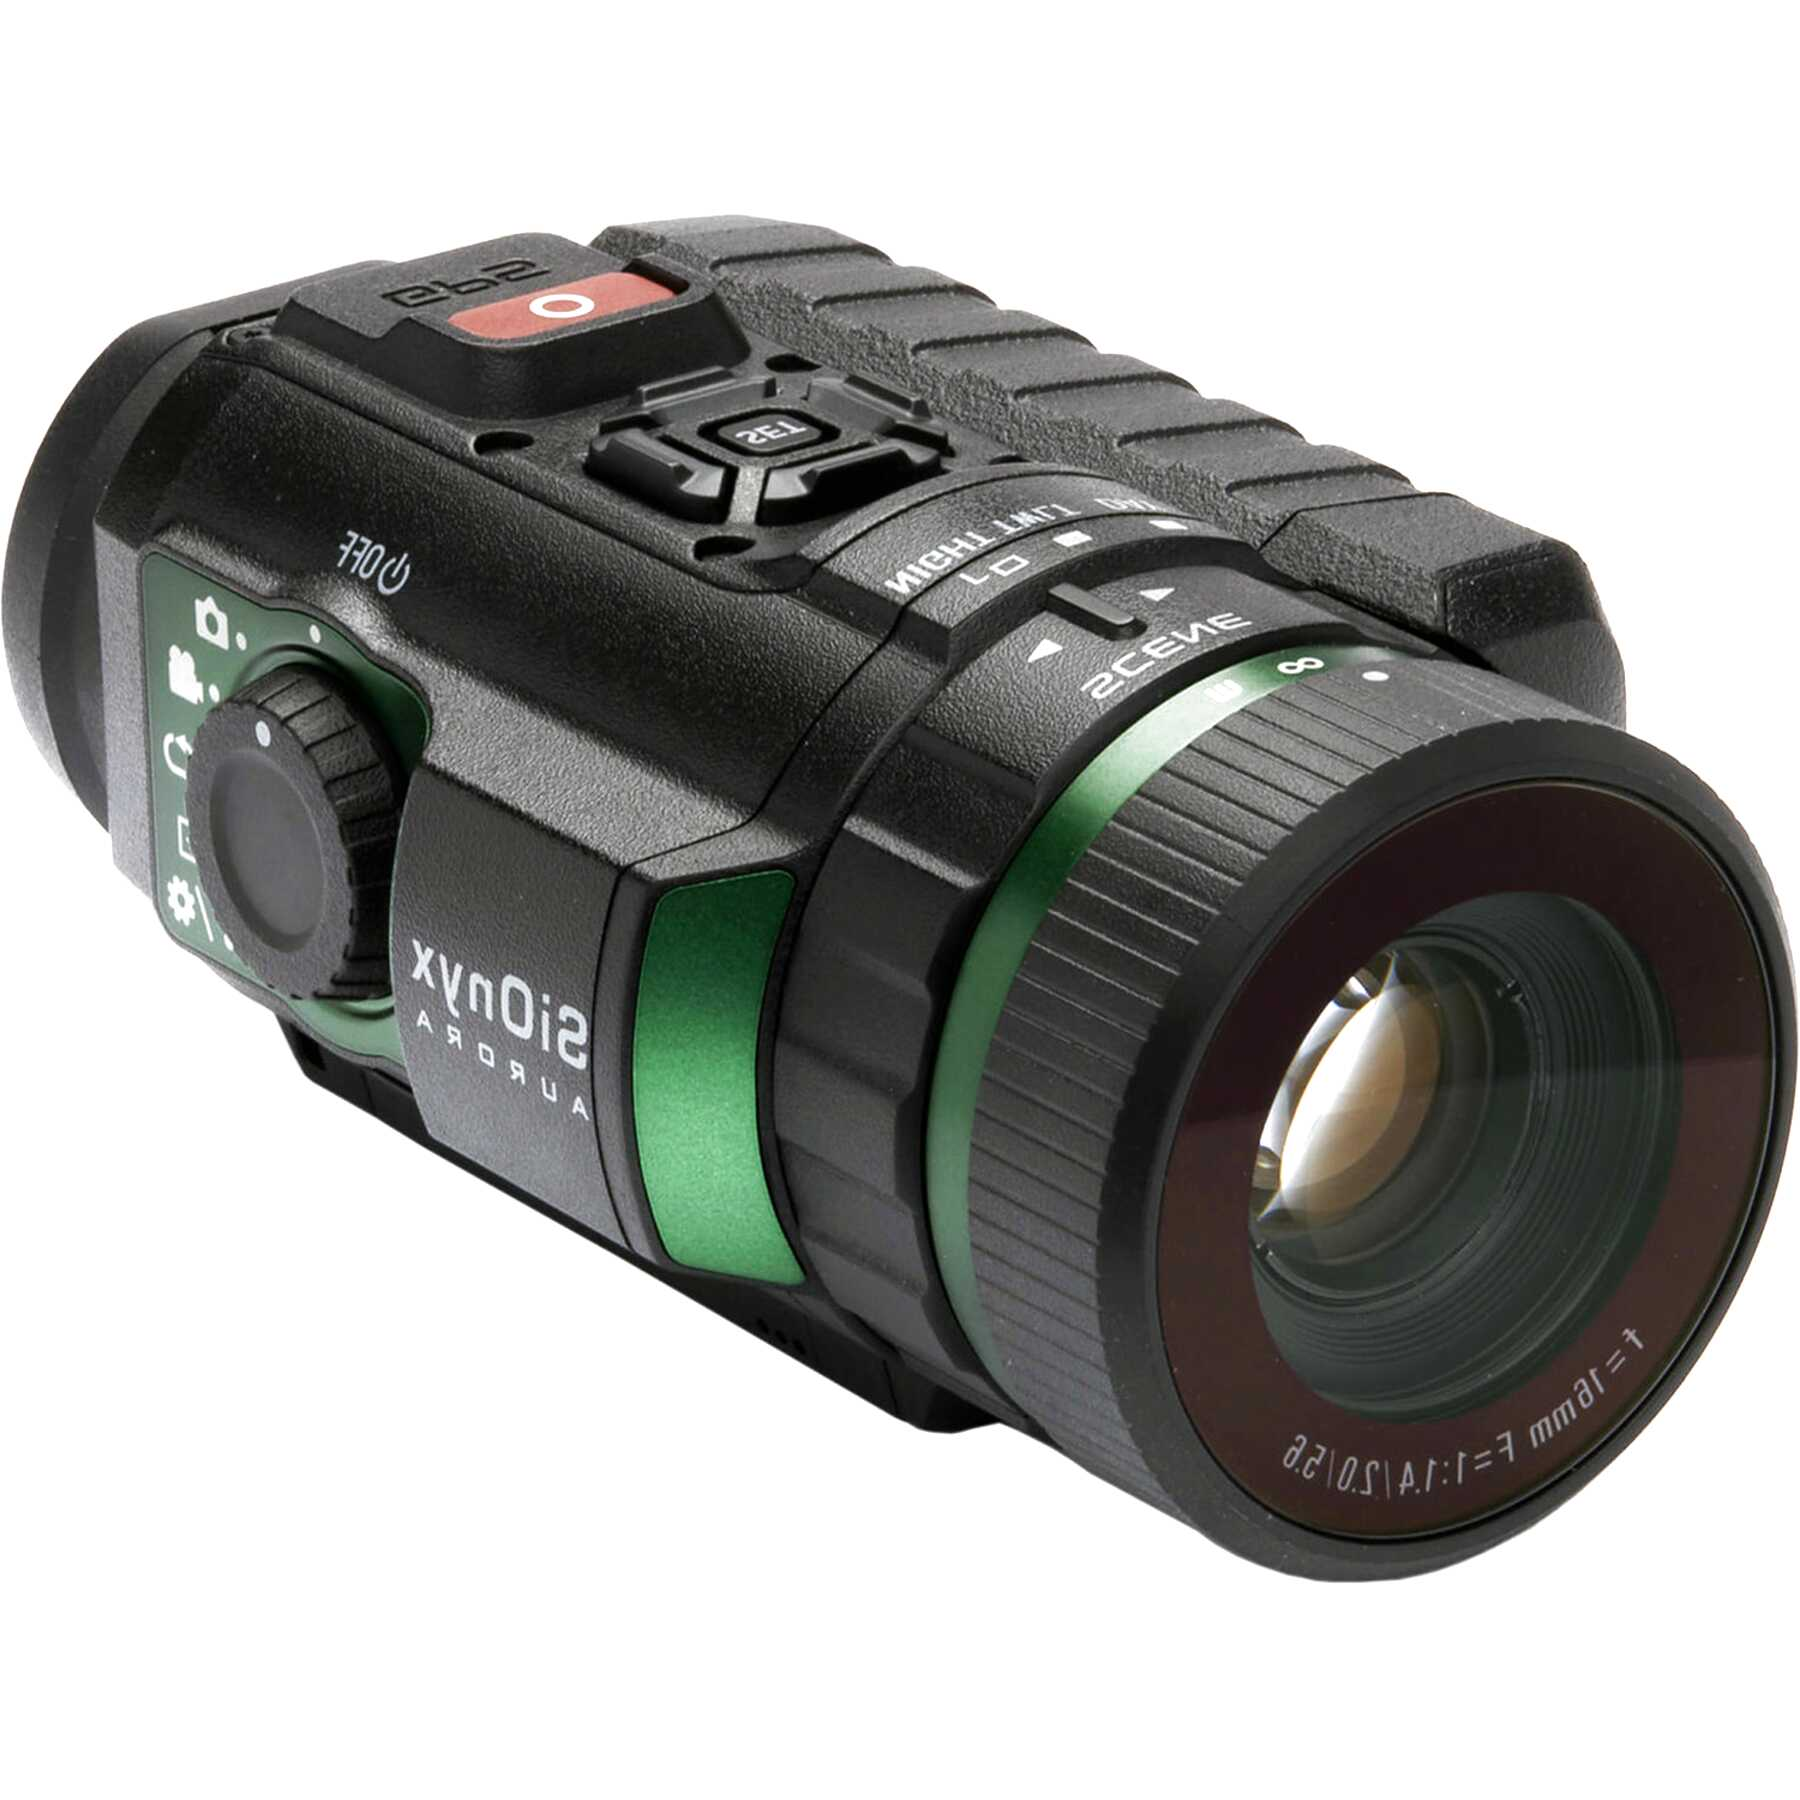 night vision for sale